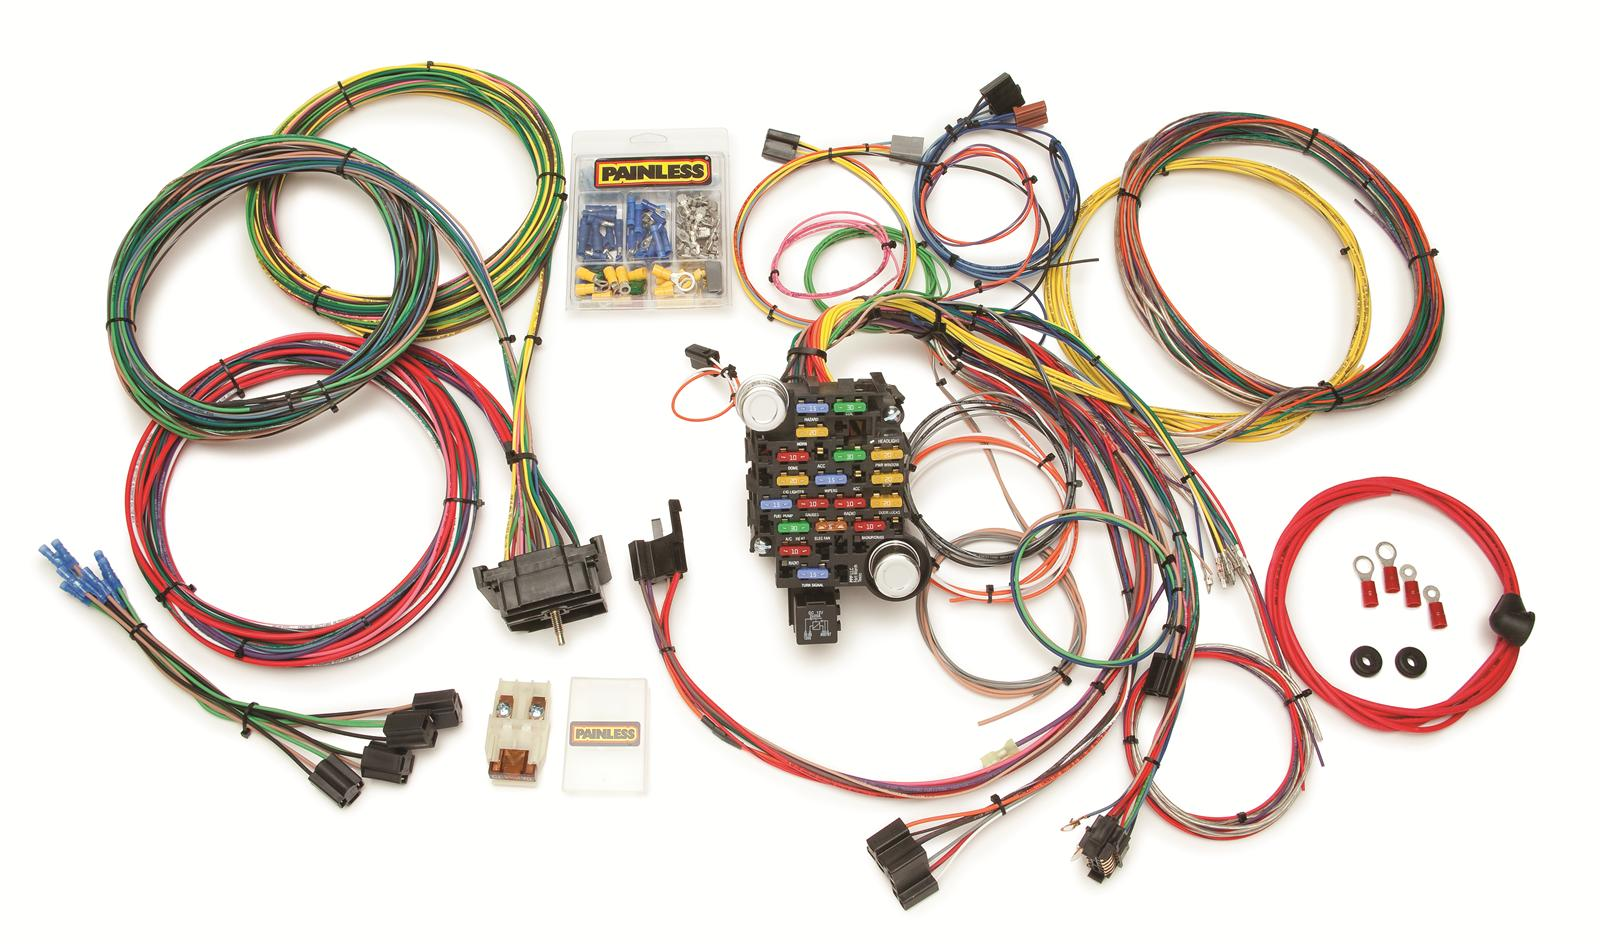 prf 10206_xl painless performance gmc chevy truck harnesses 10206 free electrical wiring harness at bayanpartner.co